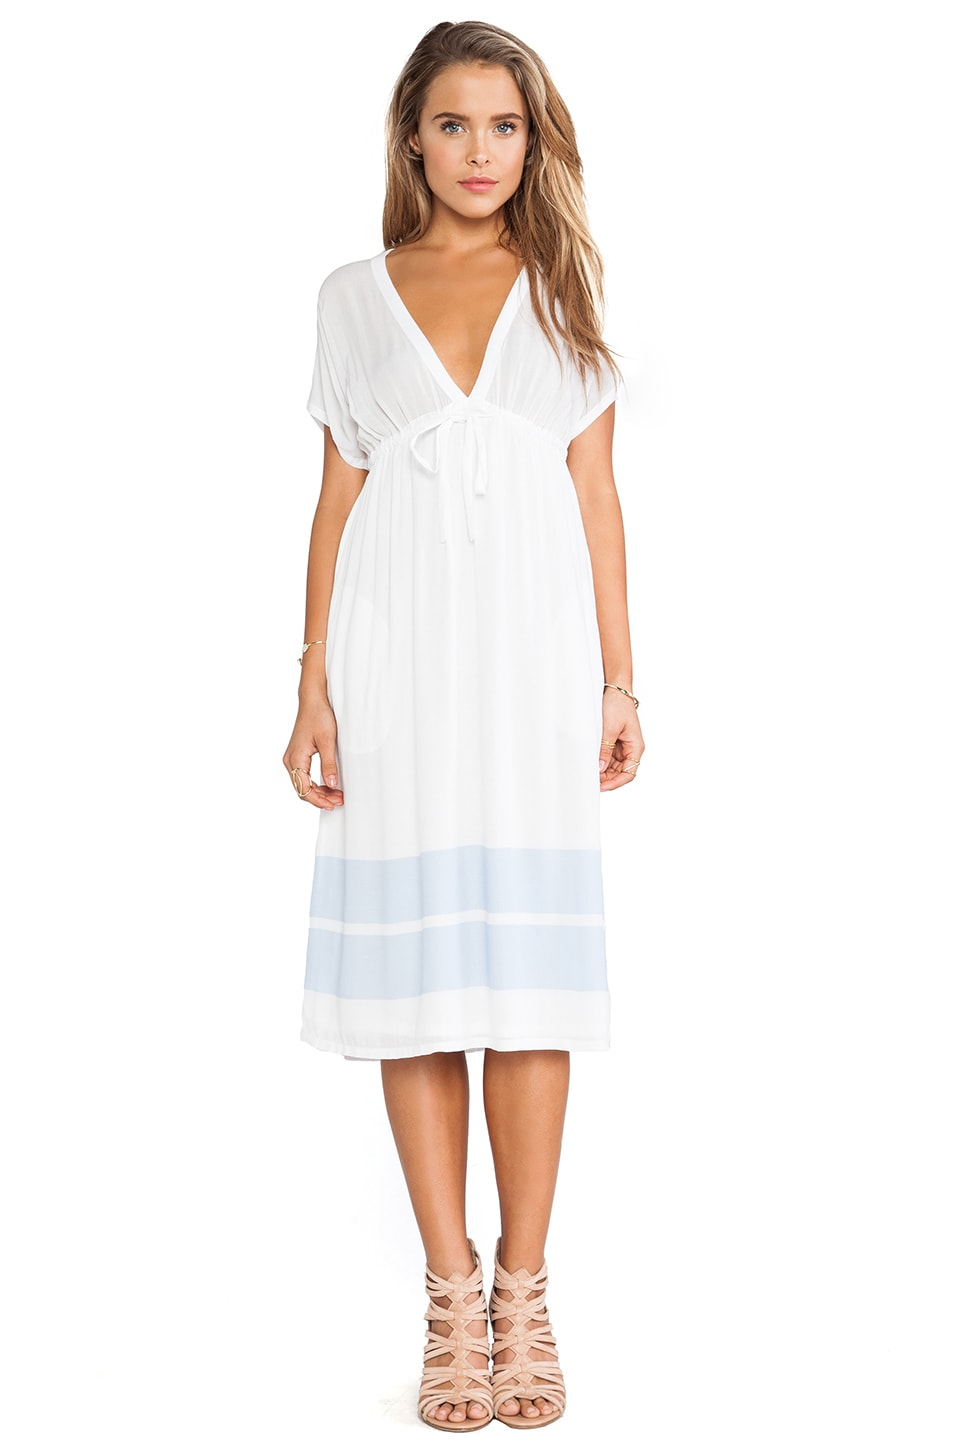 James Perse Empire Dress in White/Open Sky